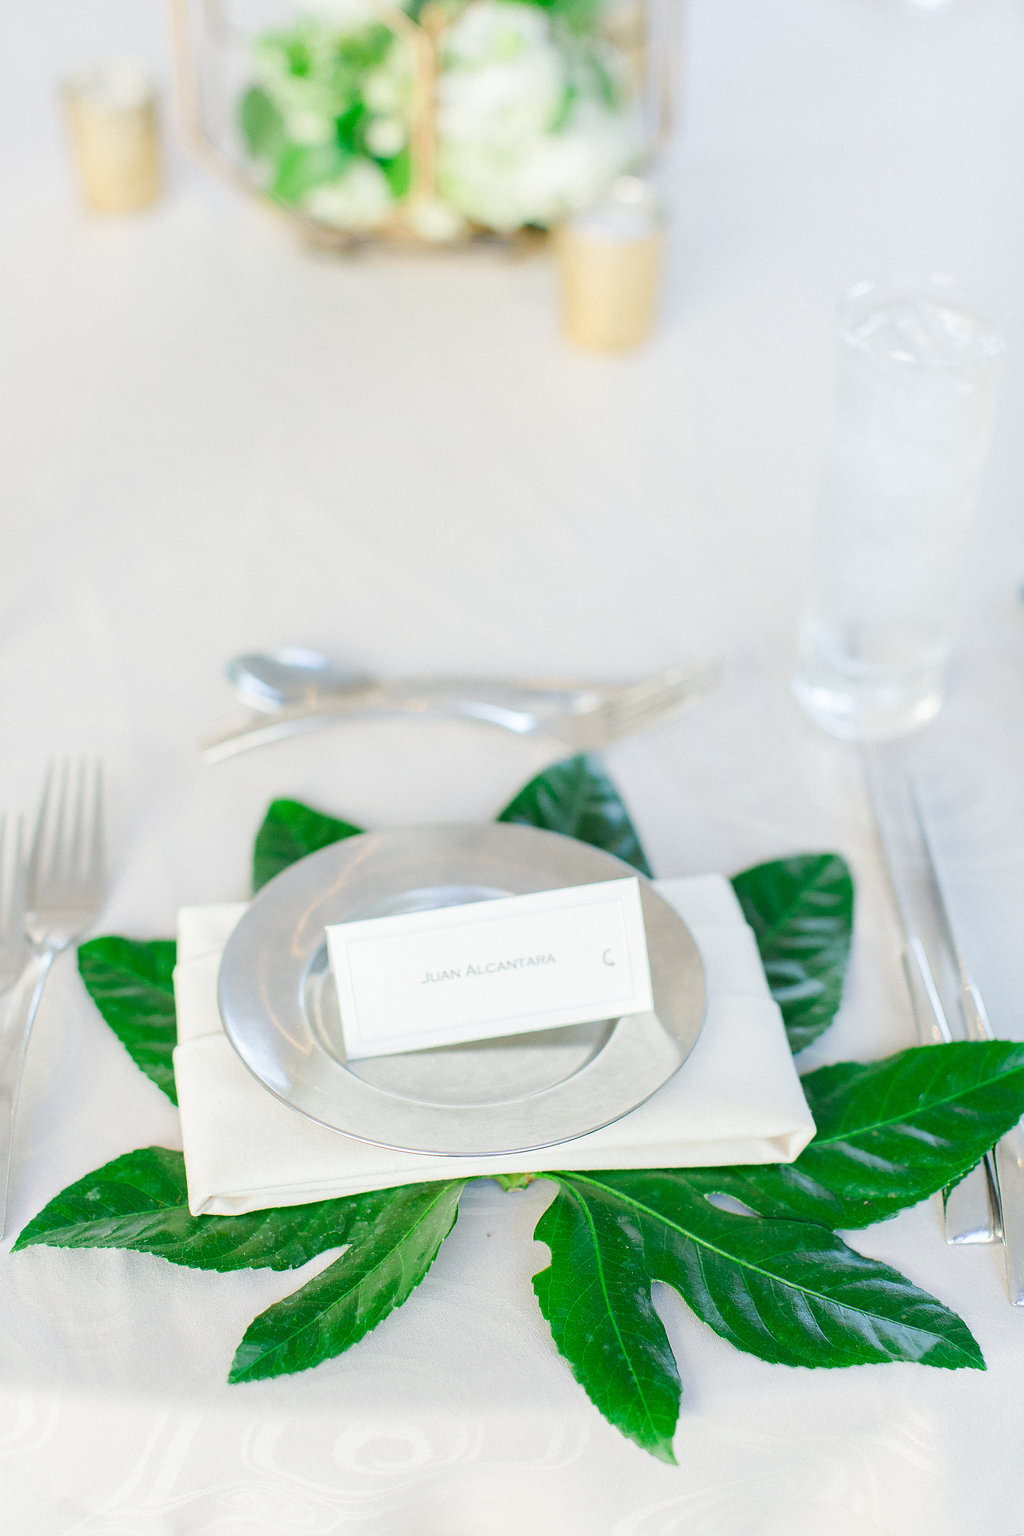 Classic, Earthy Organic Garden Wedding Reception Decor, Silver Charger, White Linen, Green Leaf and Traditional Seating Card